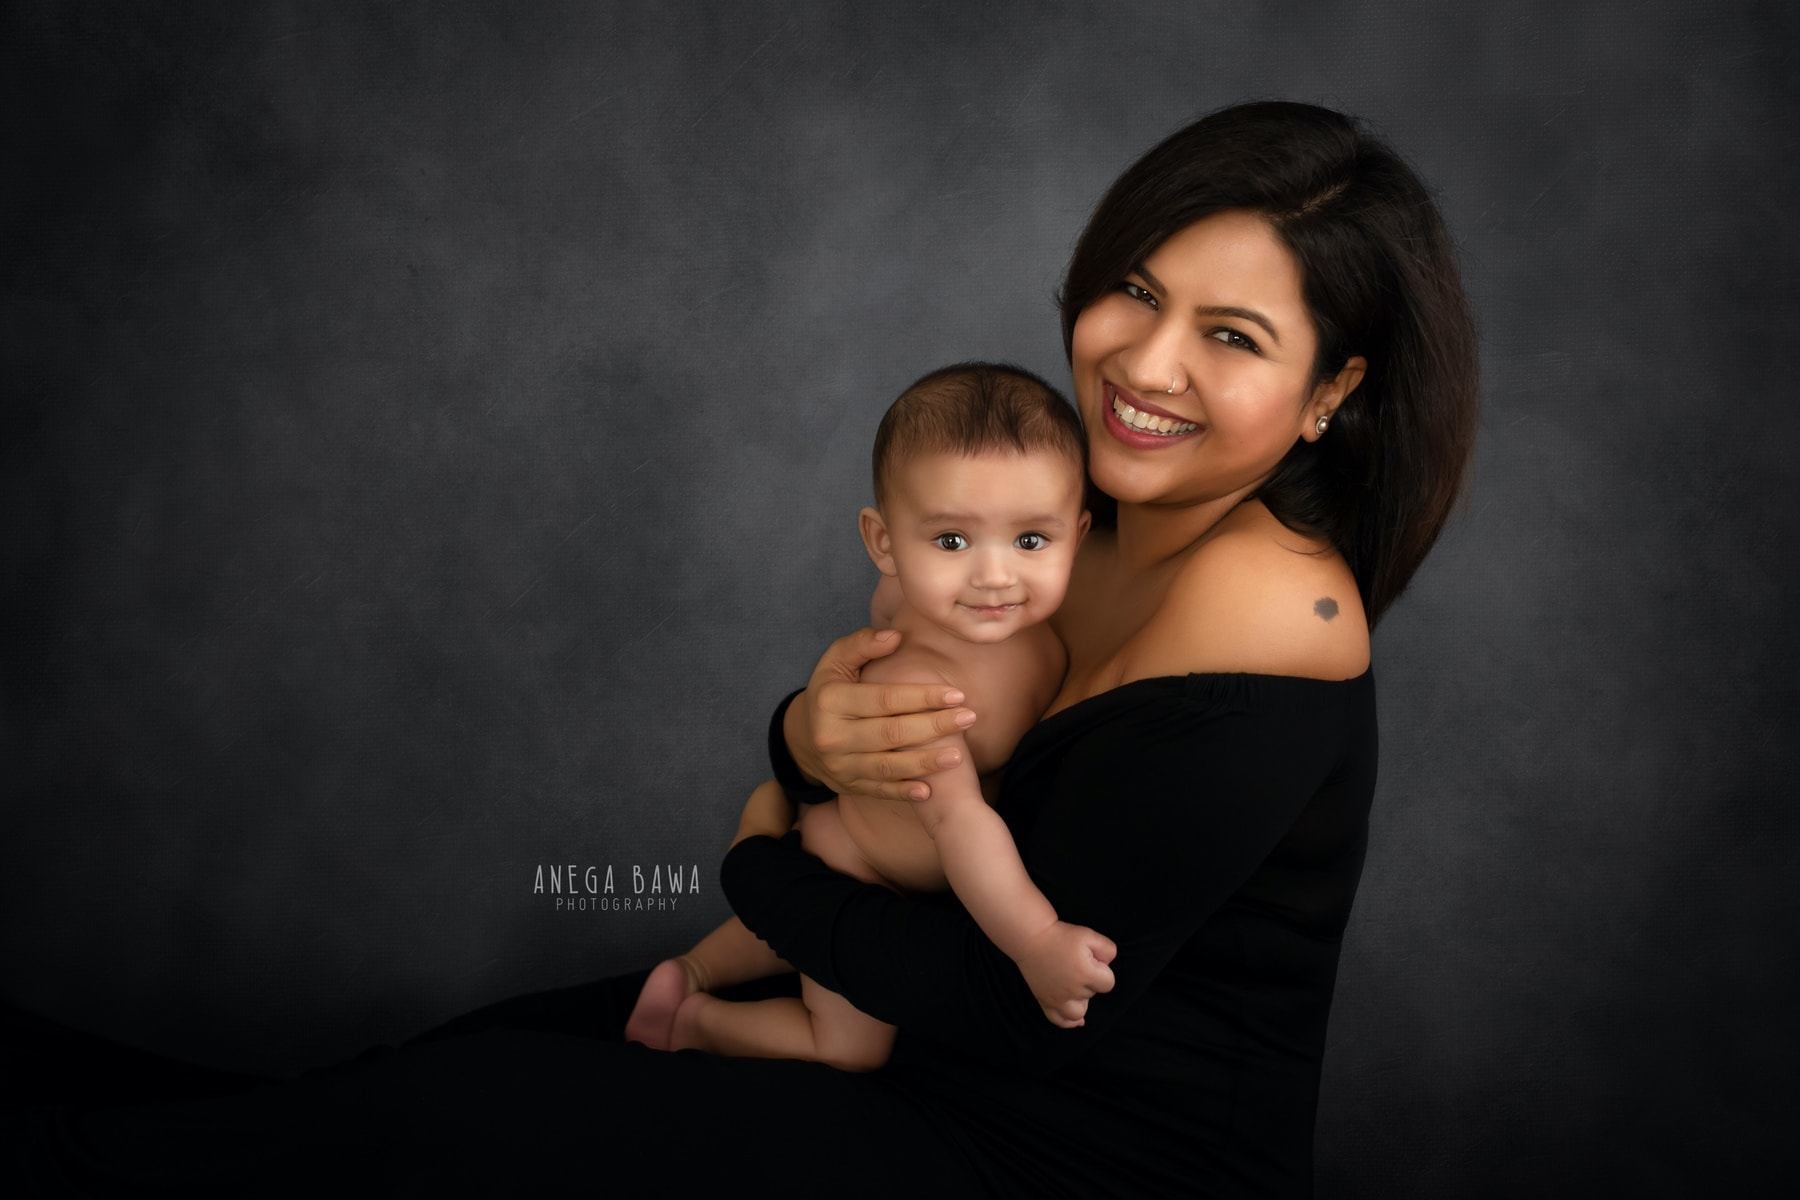 black mother and baby photography delhi 3 months baby boy photoshoot gurgaon anega bawa